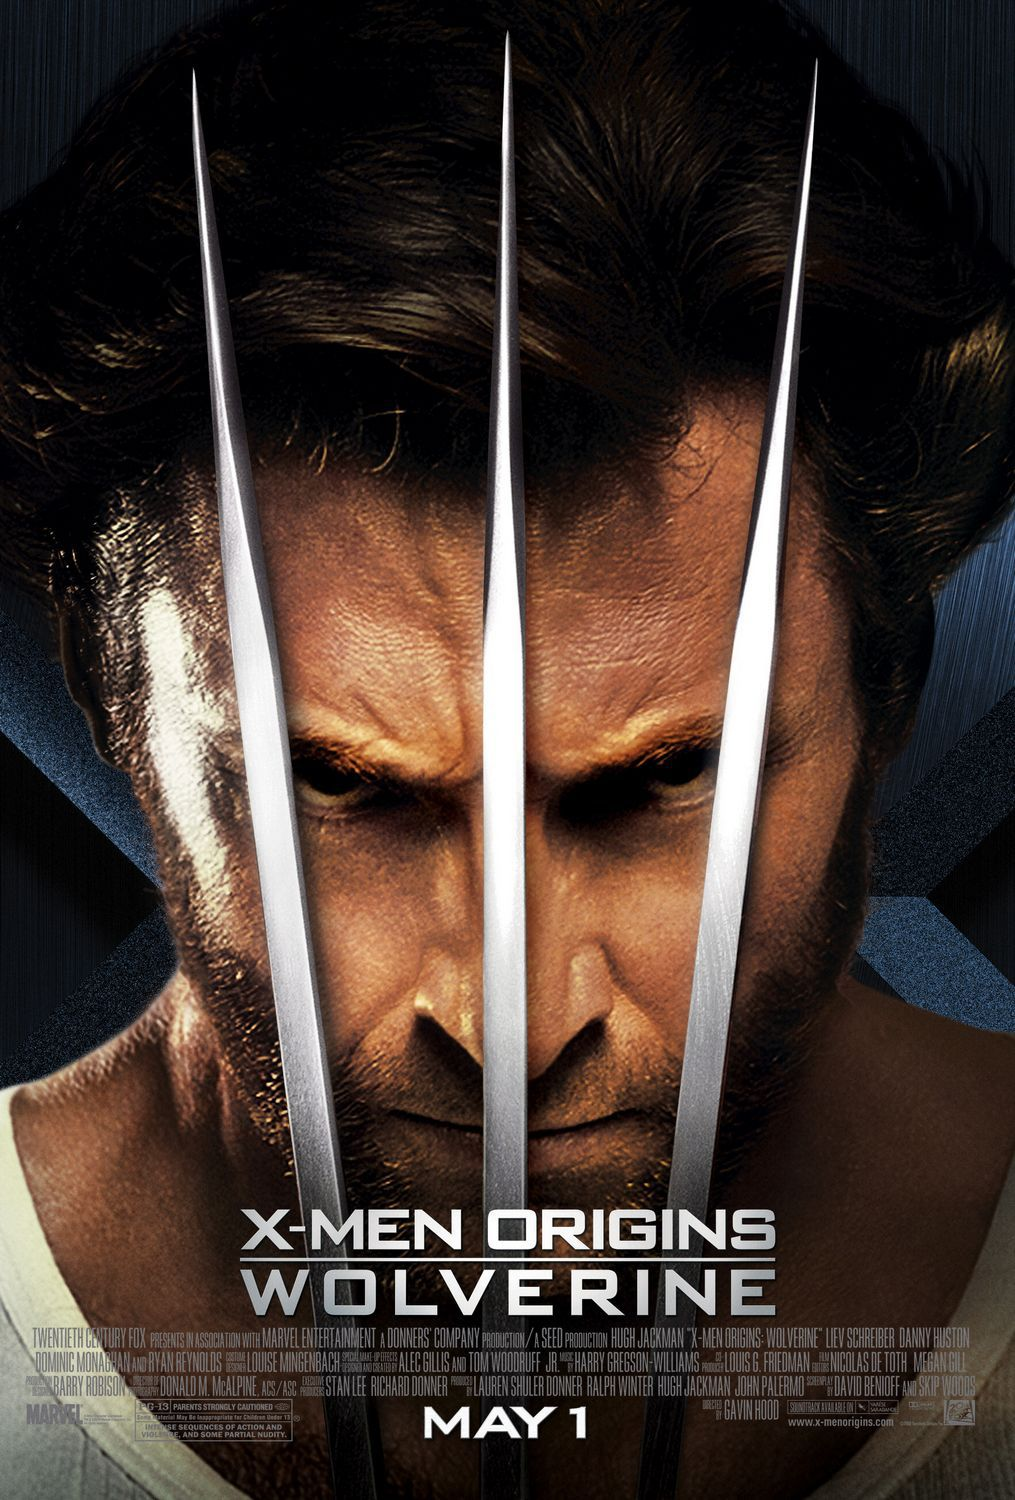 X-Men 4 - Le Origini di Wolverine - Origins of Wolverine (2009) with Hugh Jackman